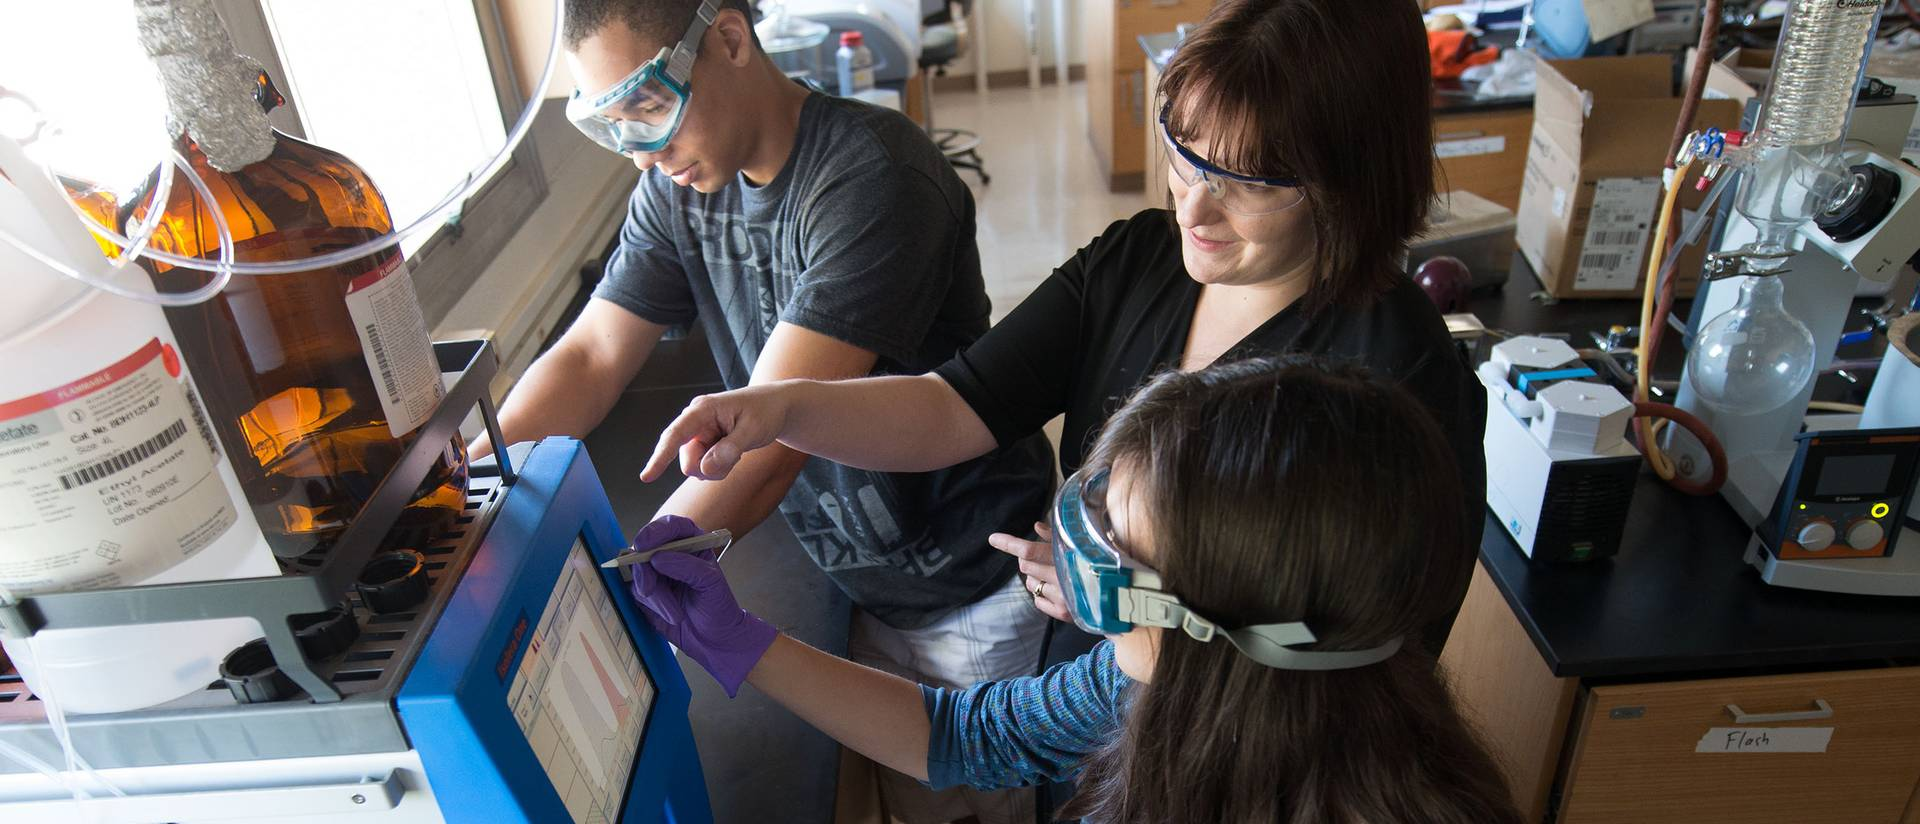 Tayo Sanders (left) works with research mentor Jennifer Dahl (middle), an assistant professor in materials science, on cross-linked gold nanoparticle films